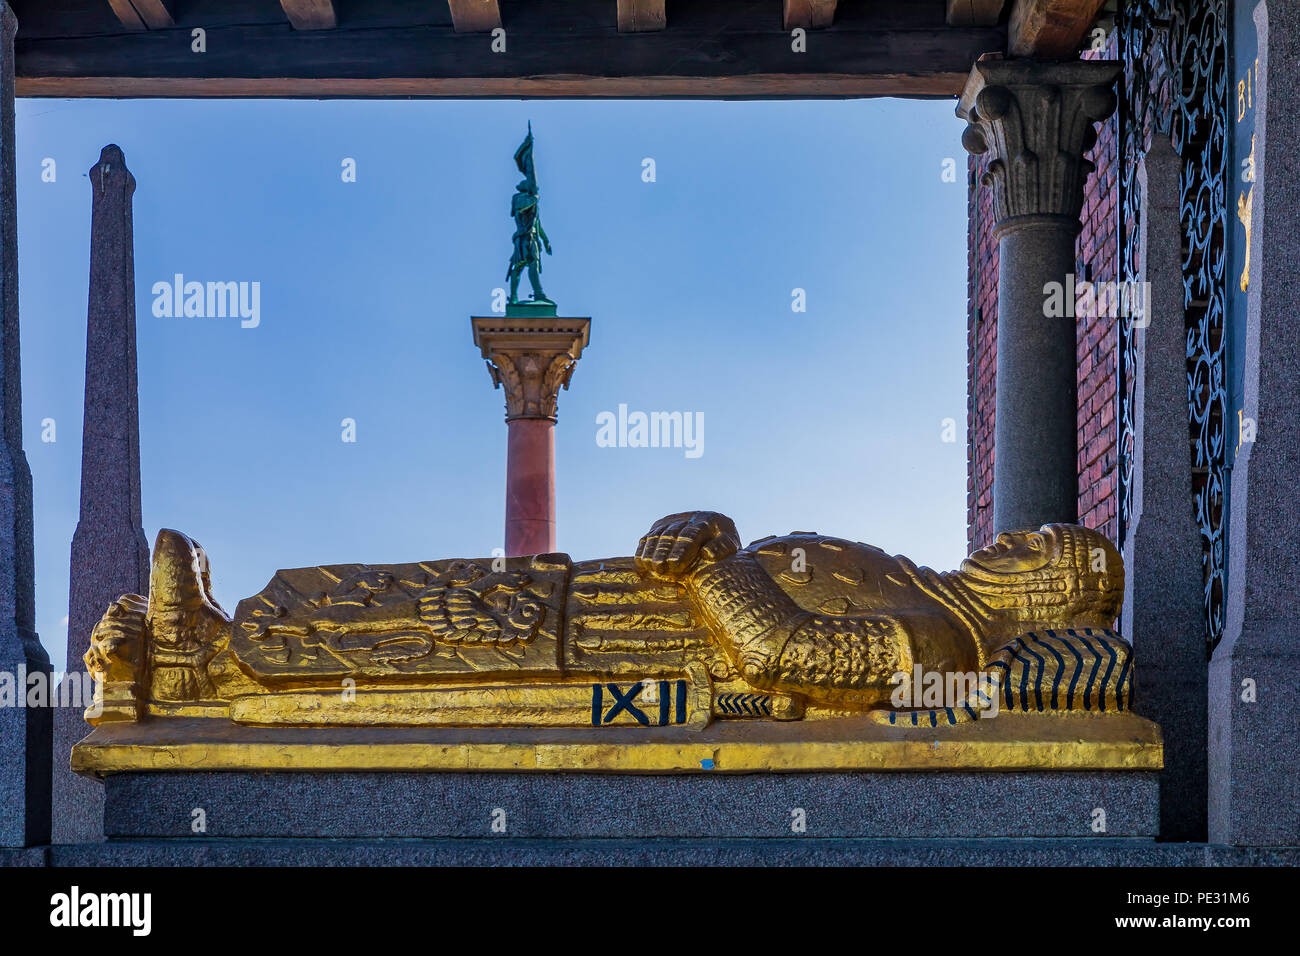 Tomb of Birger Jarl or Birger Magnusson, Jarl or Duke of Sweden, who founded Stockholm in the 13th century at Stadshuset, City Hall, in Kungsholmen is - Stock Image